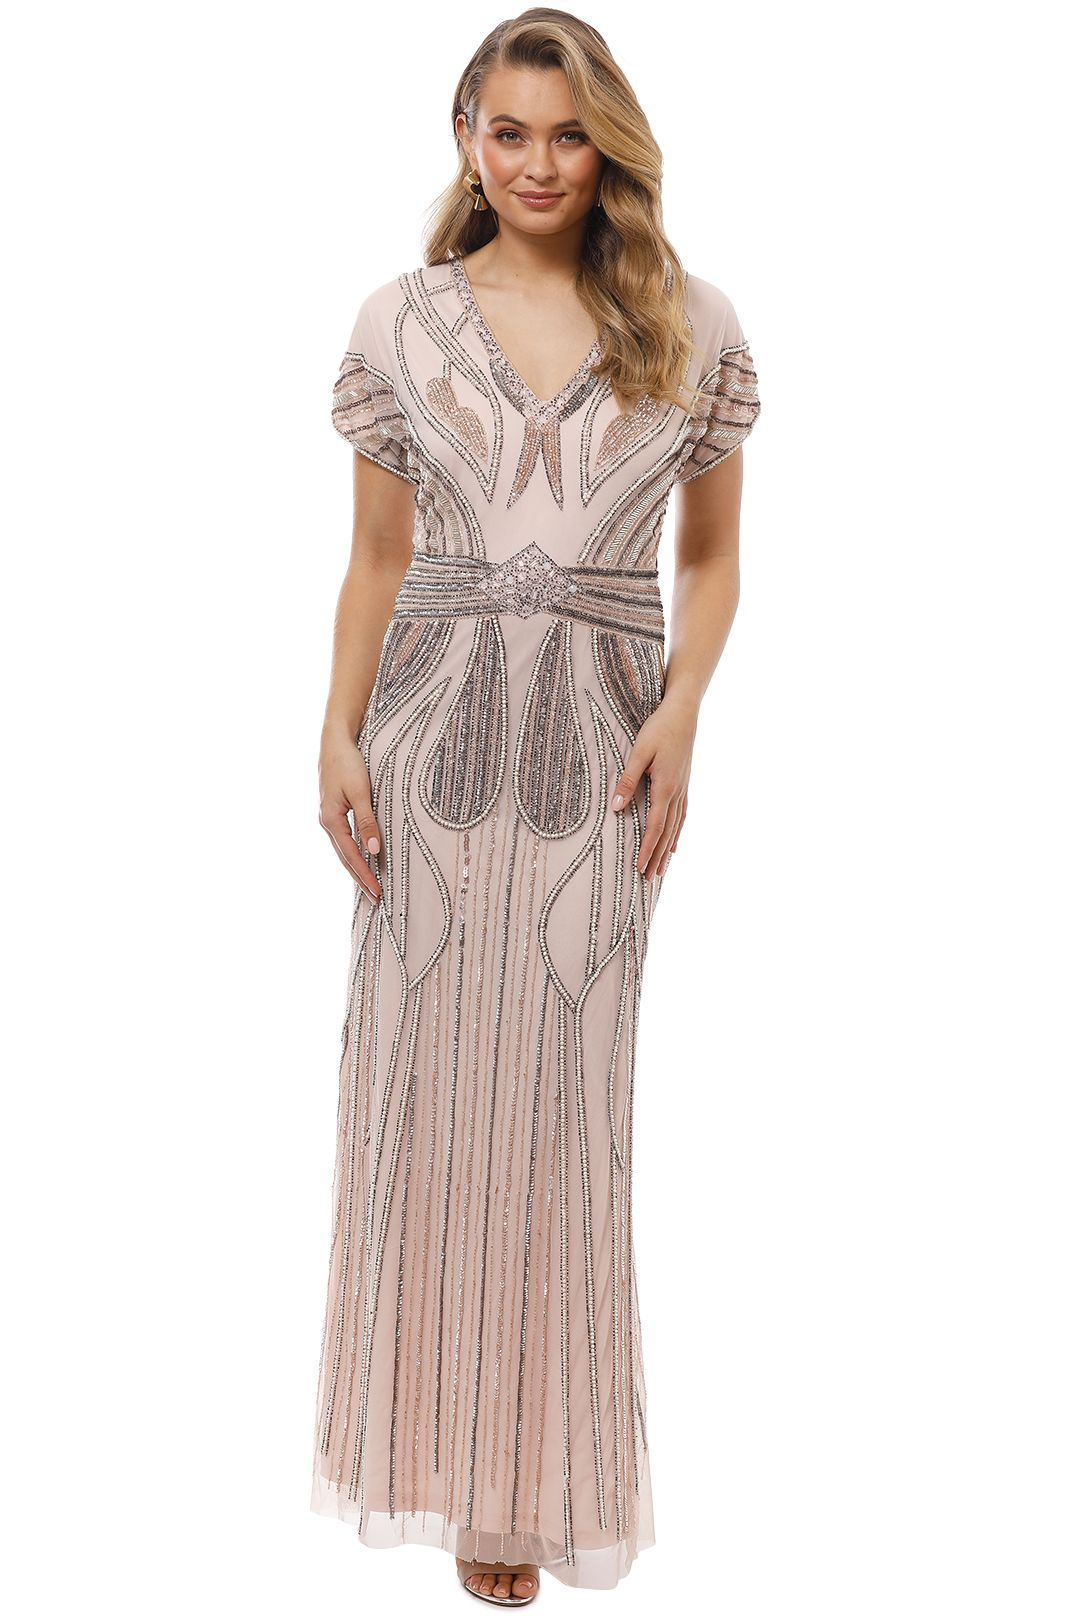 Grace and Blaze - Atlantis Gown - Blush - Front